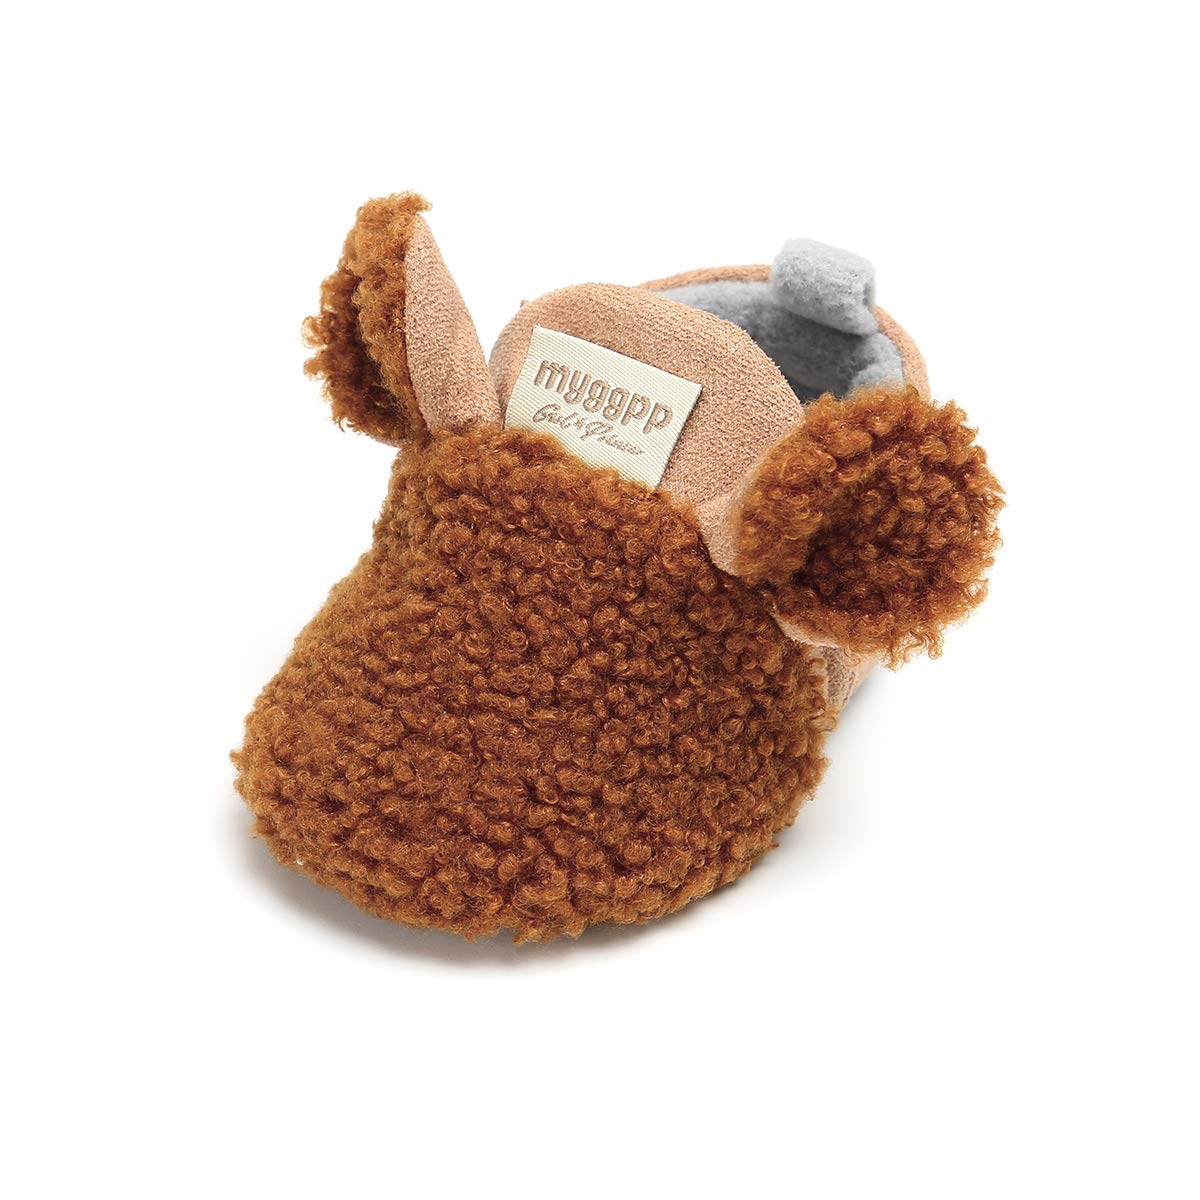 Tutoo Baby Boys' Girls' Shoes Cotton Cute Animals Slippers Prewalker Newborn Infant Crib Shoes (4.1 Inches (3-6 Months), B-Brown)